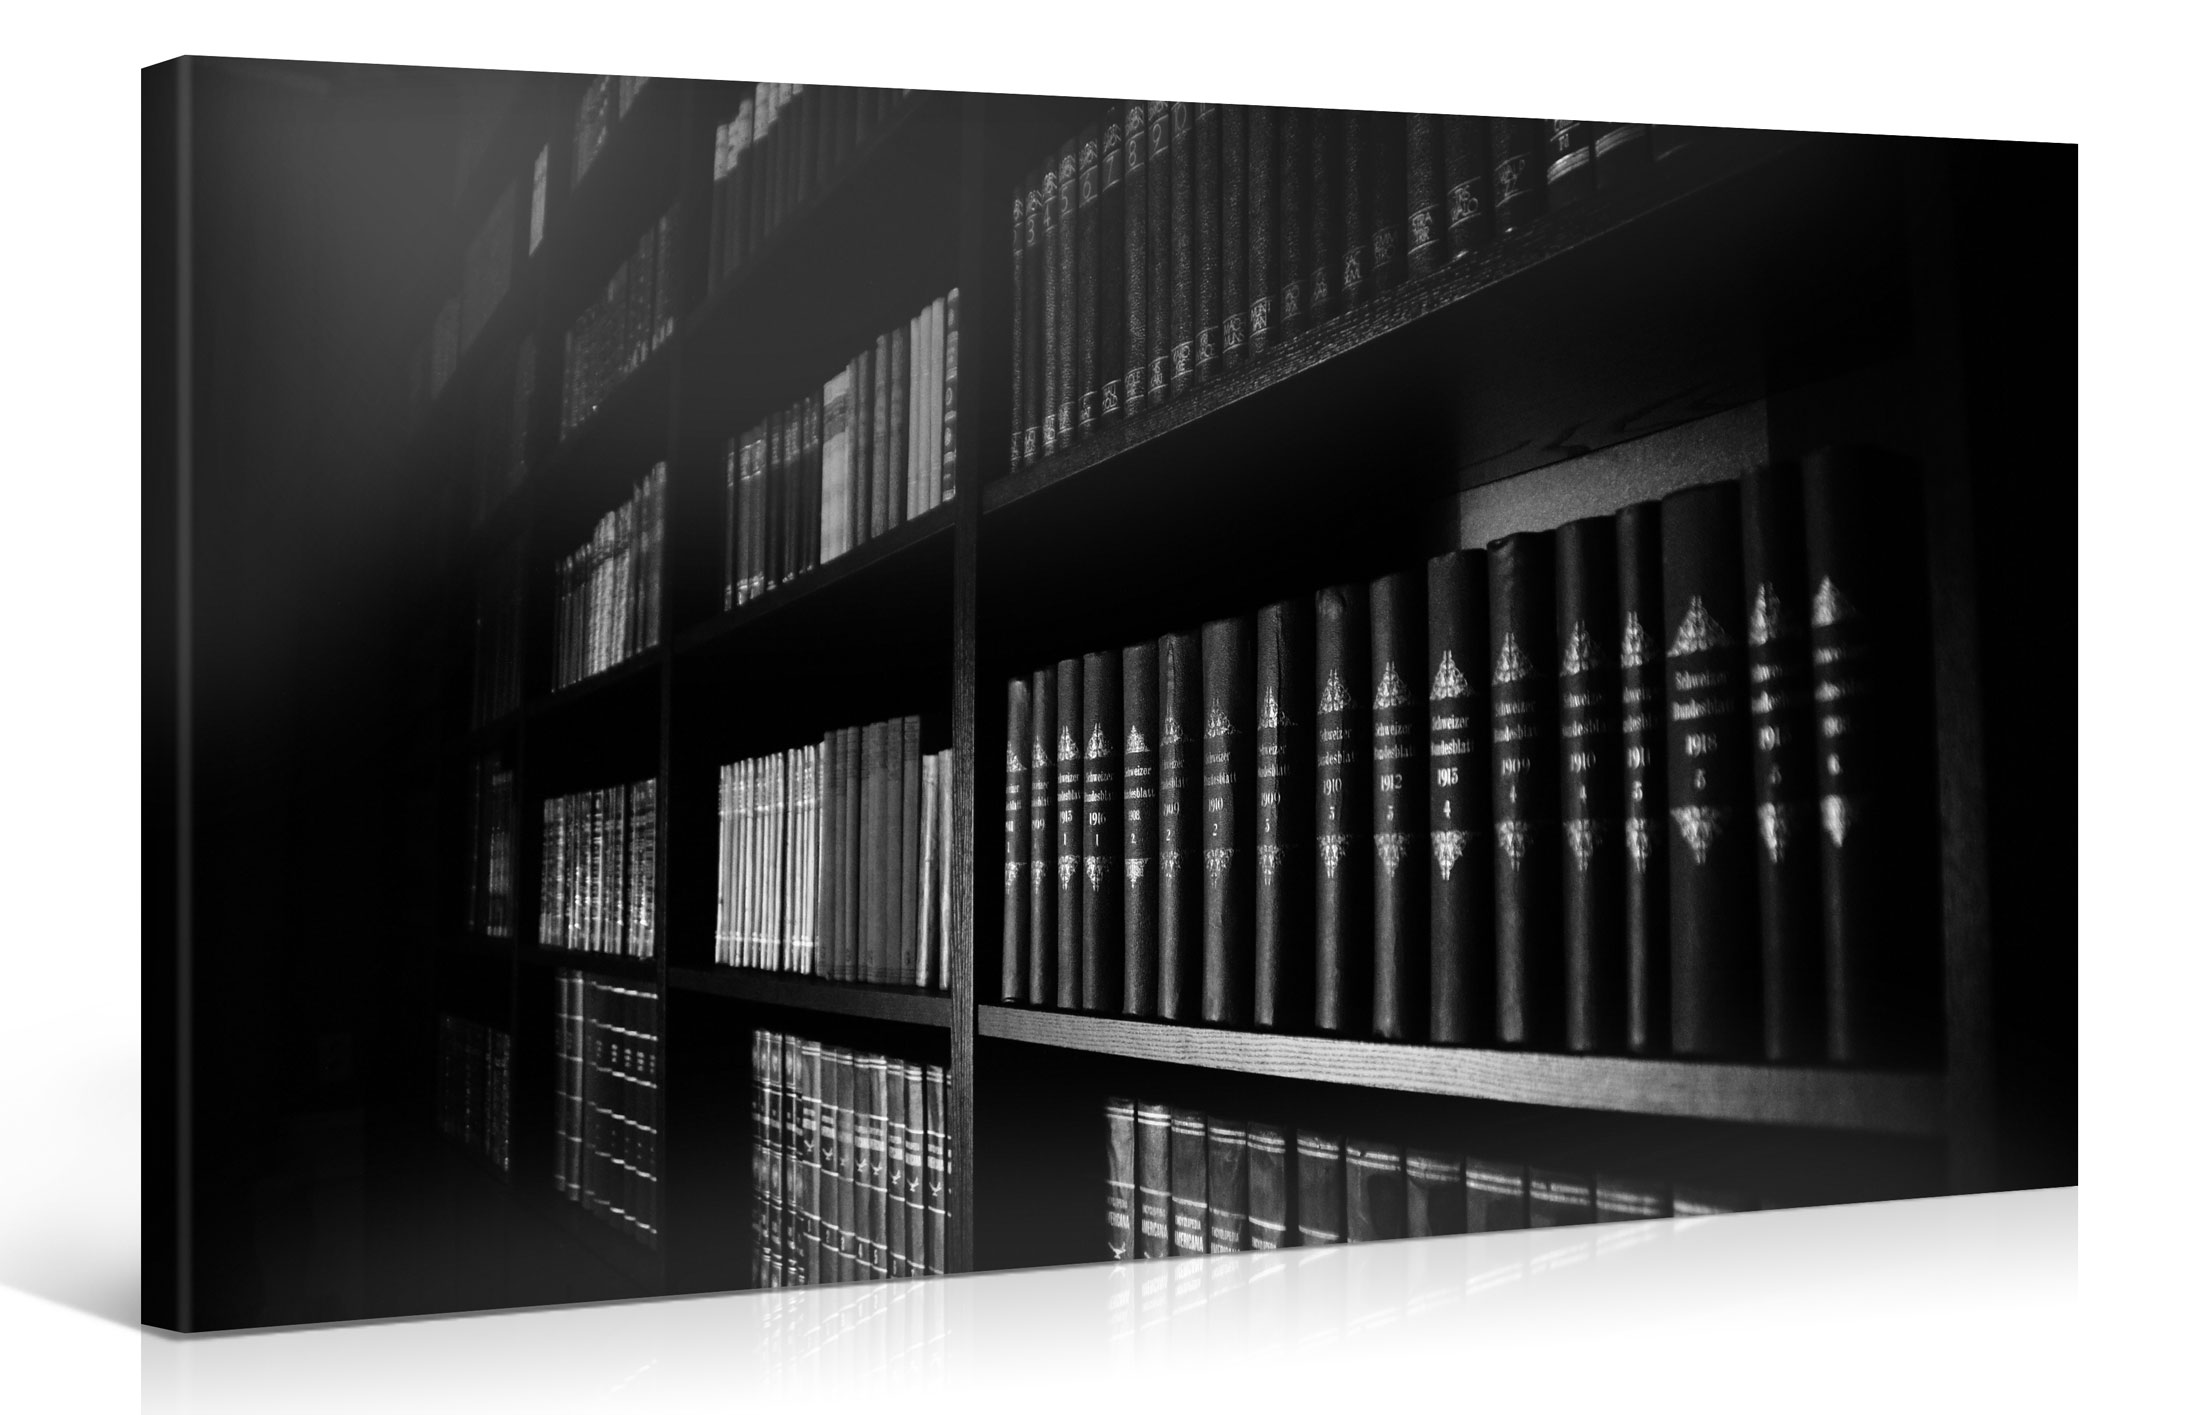 BLACK & WHITE BOOKSHELF - 100x50cm -  #e6588